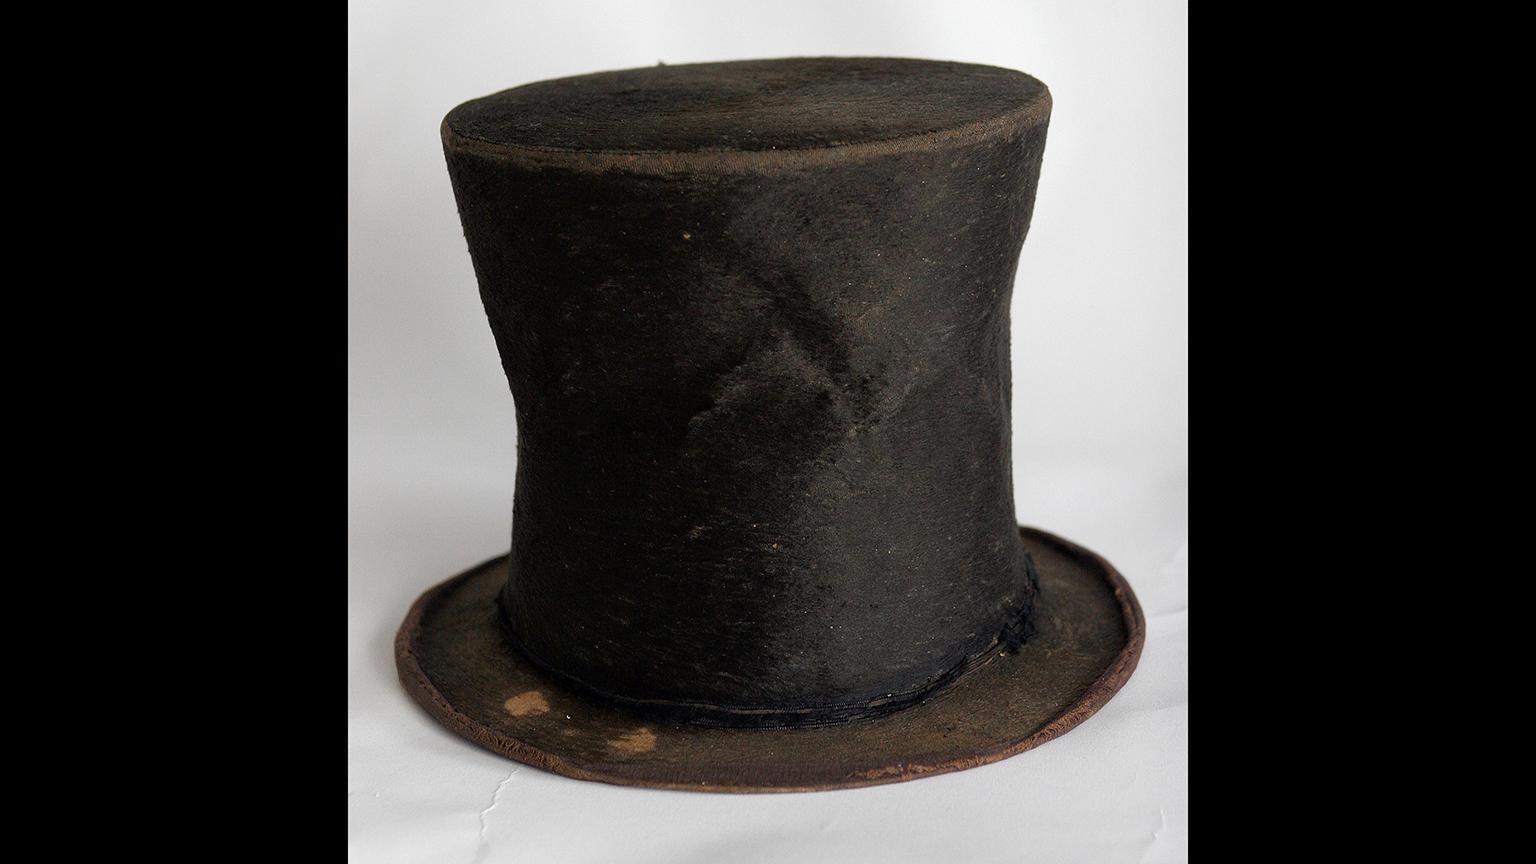 In this June 14, 2007 file photo, Abraham Lincoln's iconic stovepipe hat is photographed at the Abraham Lincoln Presidential Library and Museum in Springfield, Ill. (AP Photo / Seth Perlman, File)